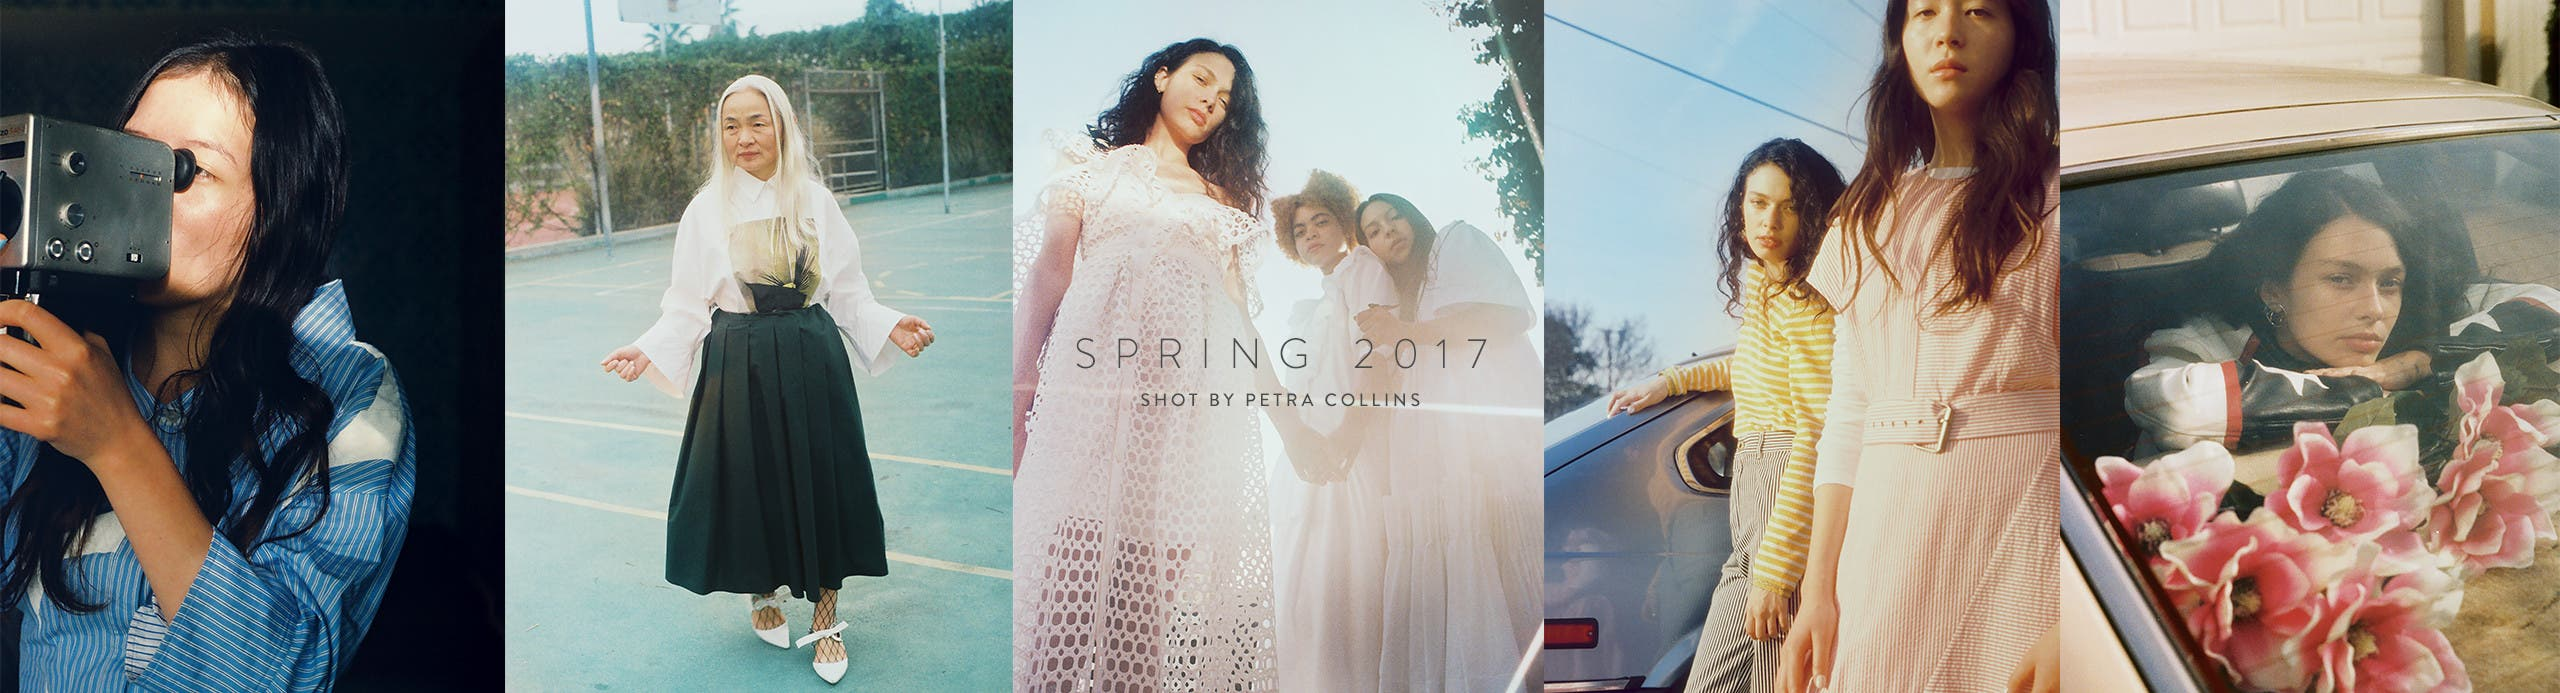 Spring 2017, shot by Petra Collins.